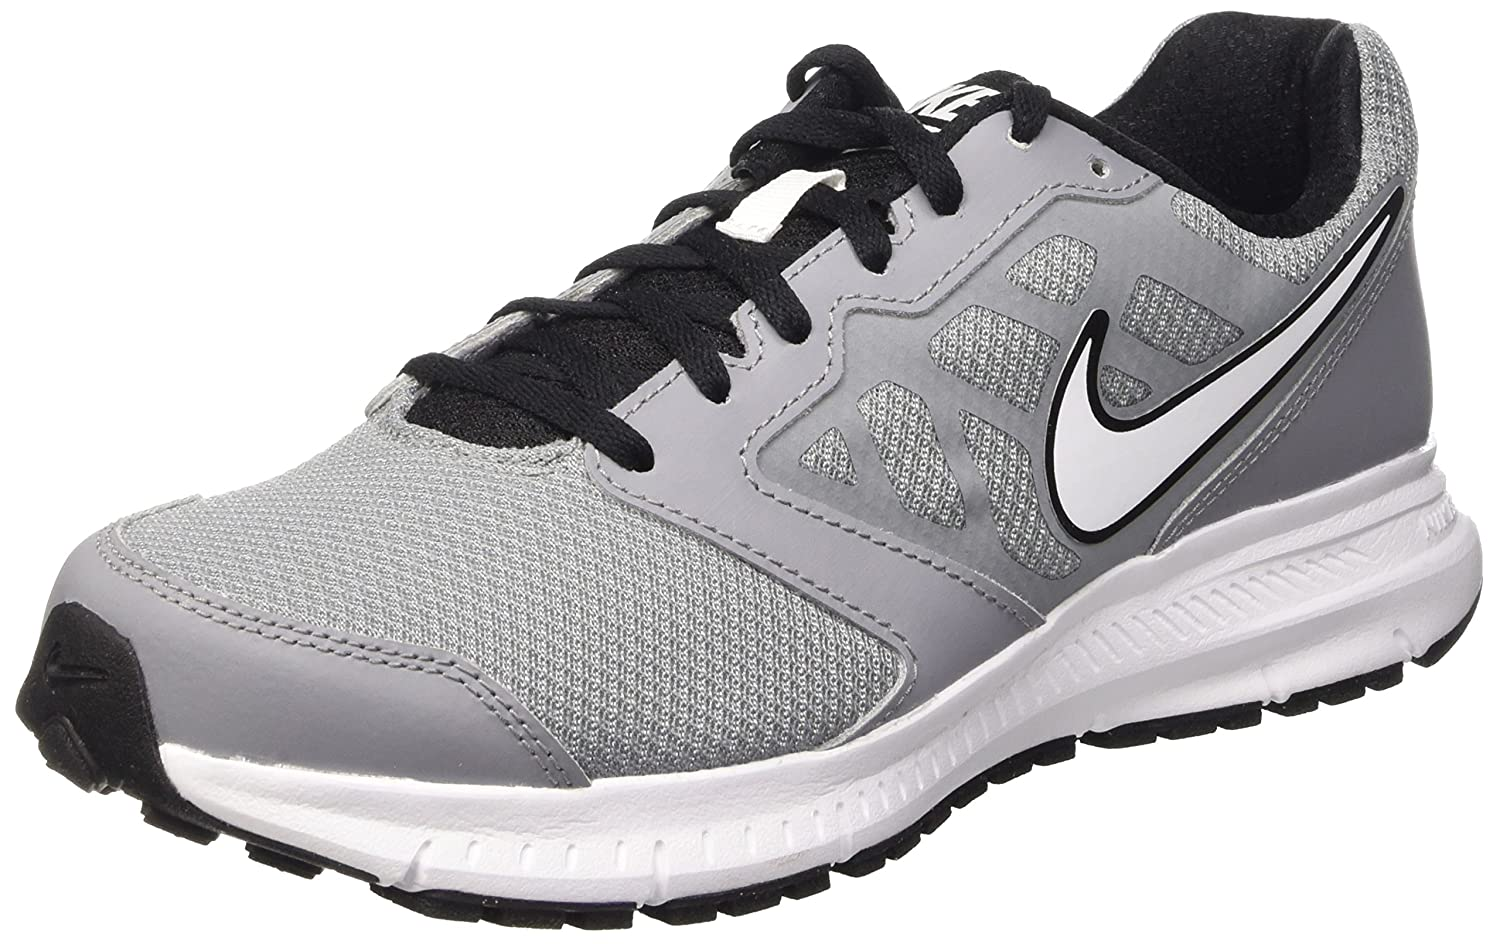 Nike Downshifter 6 Running Shoe B010OBMI72 8 D(M) US|Stealth/Black/White